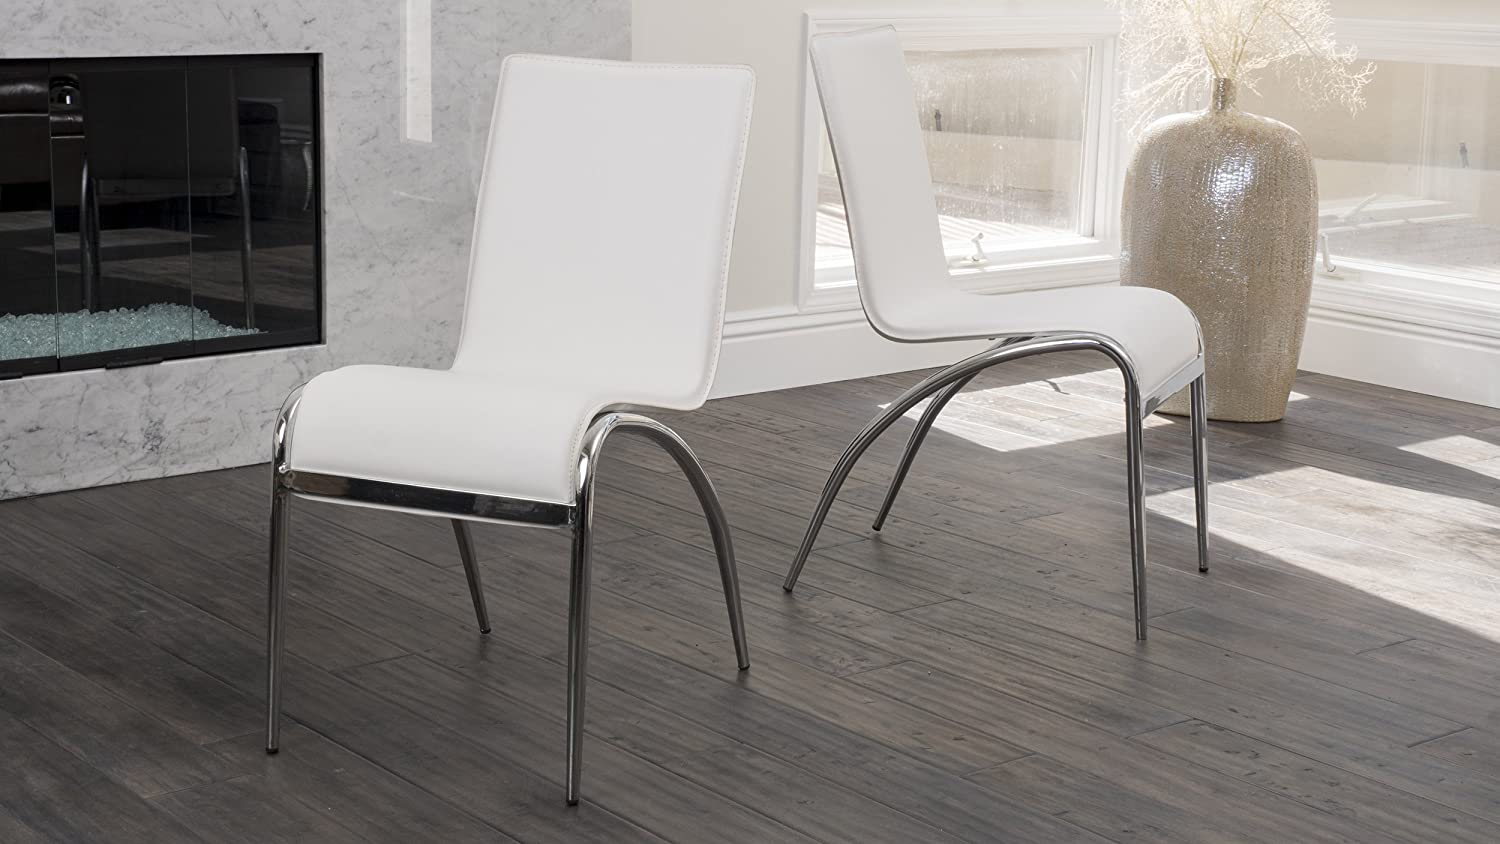 Christopher Knight Home 219164 Enola Furniture  Modern Design Dining Chairs (White) (Set of 2)